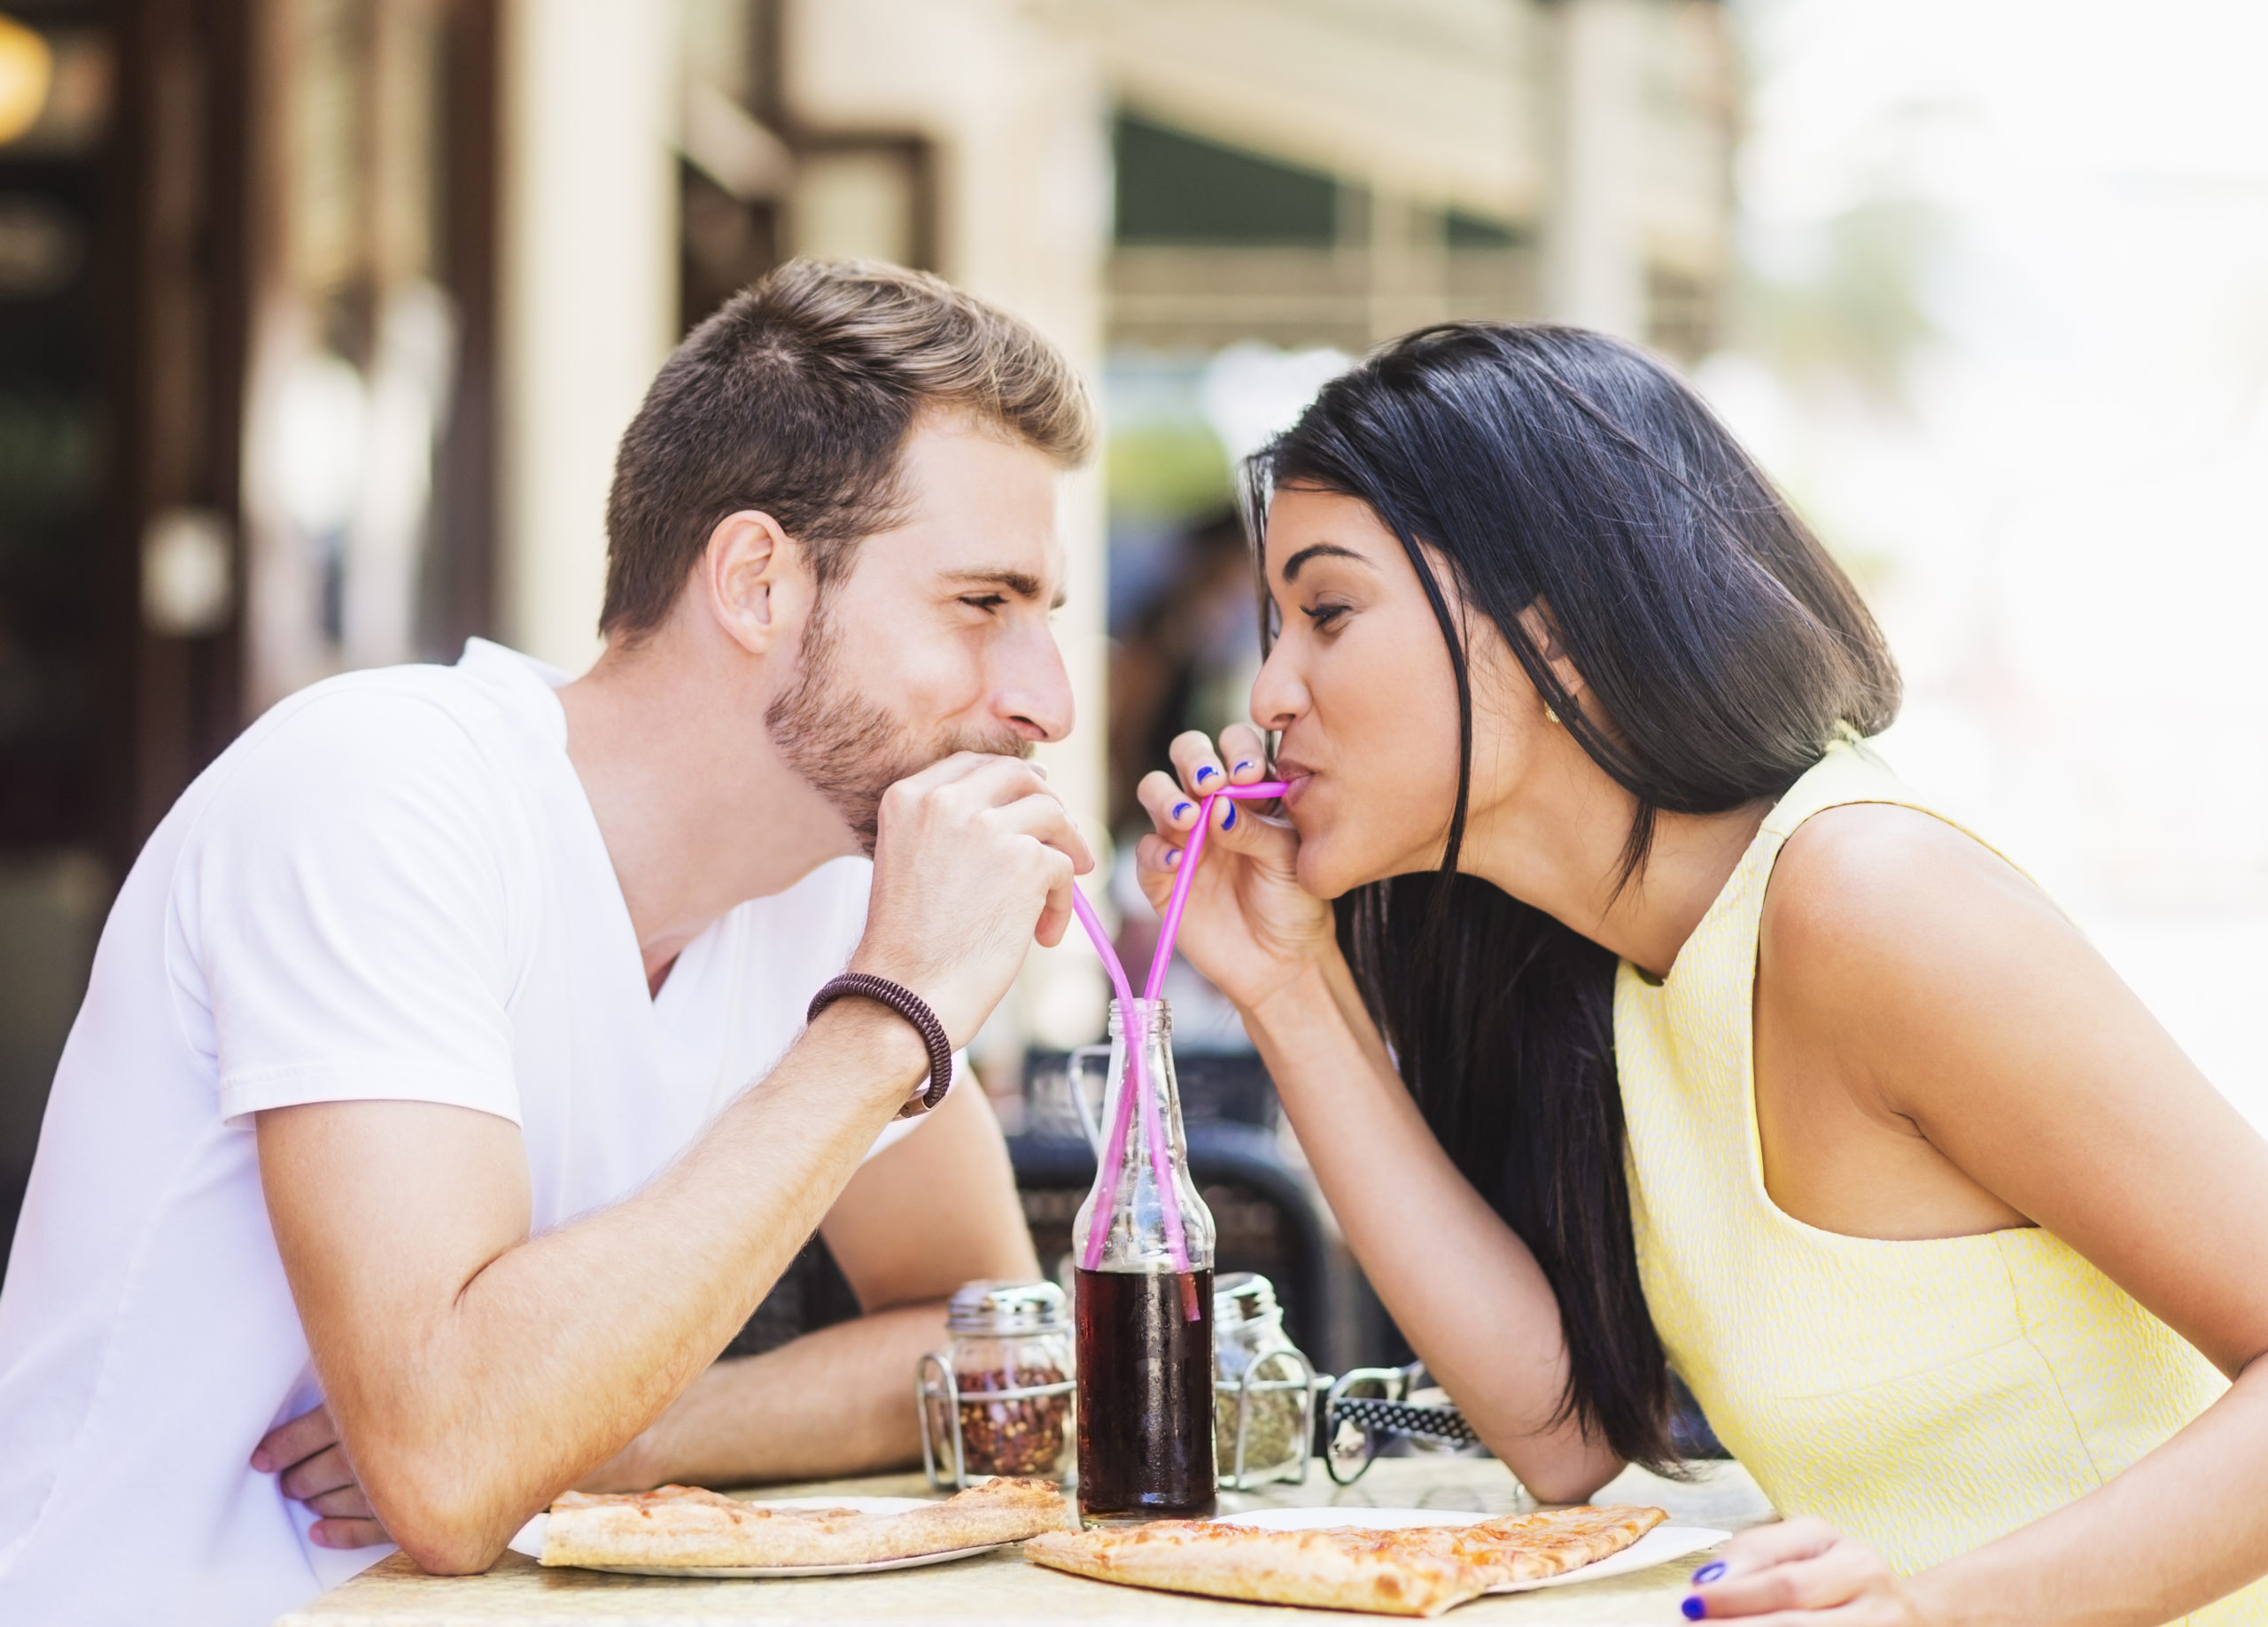 Dating Tips: Behaviors To Avoid When Dating